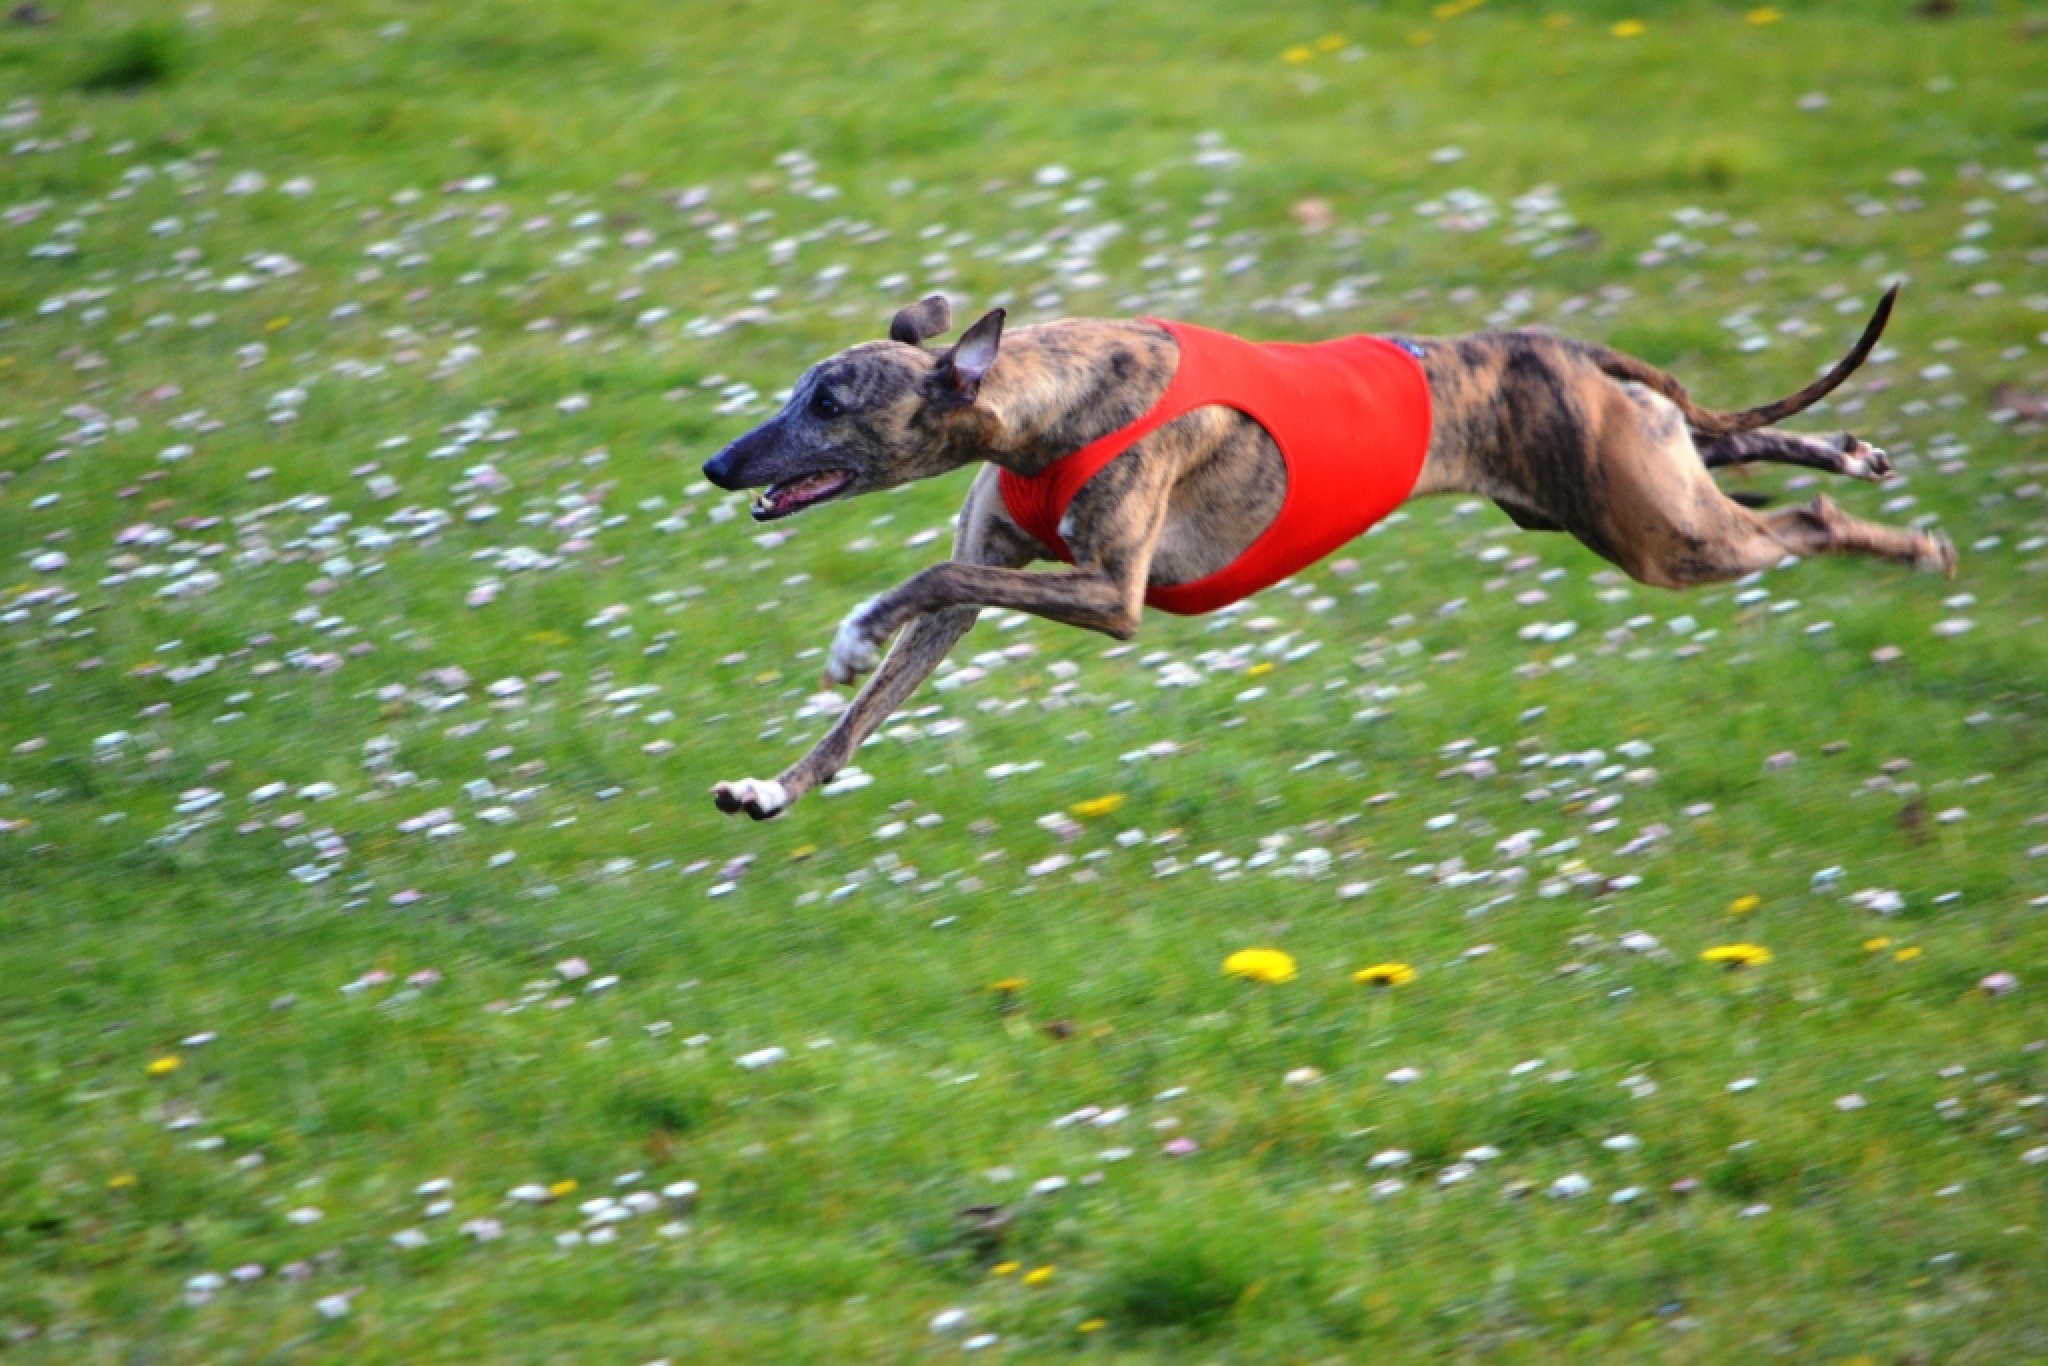 Whippet, lure racing by alison16